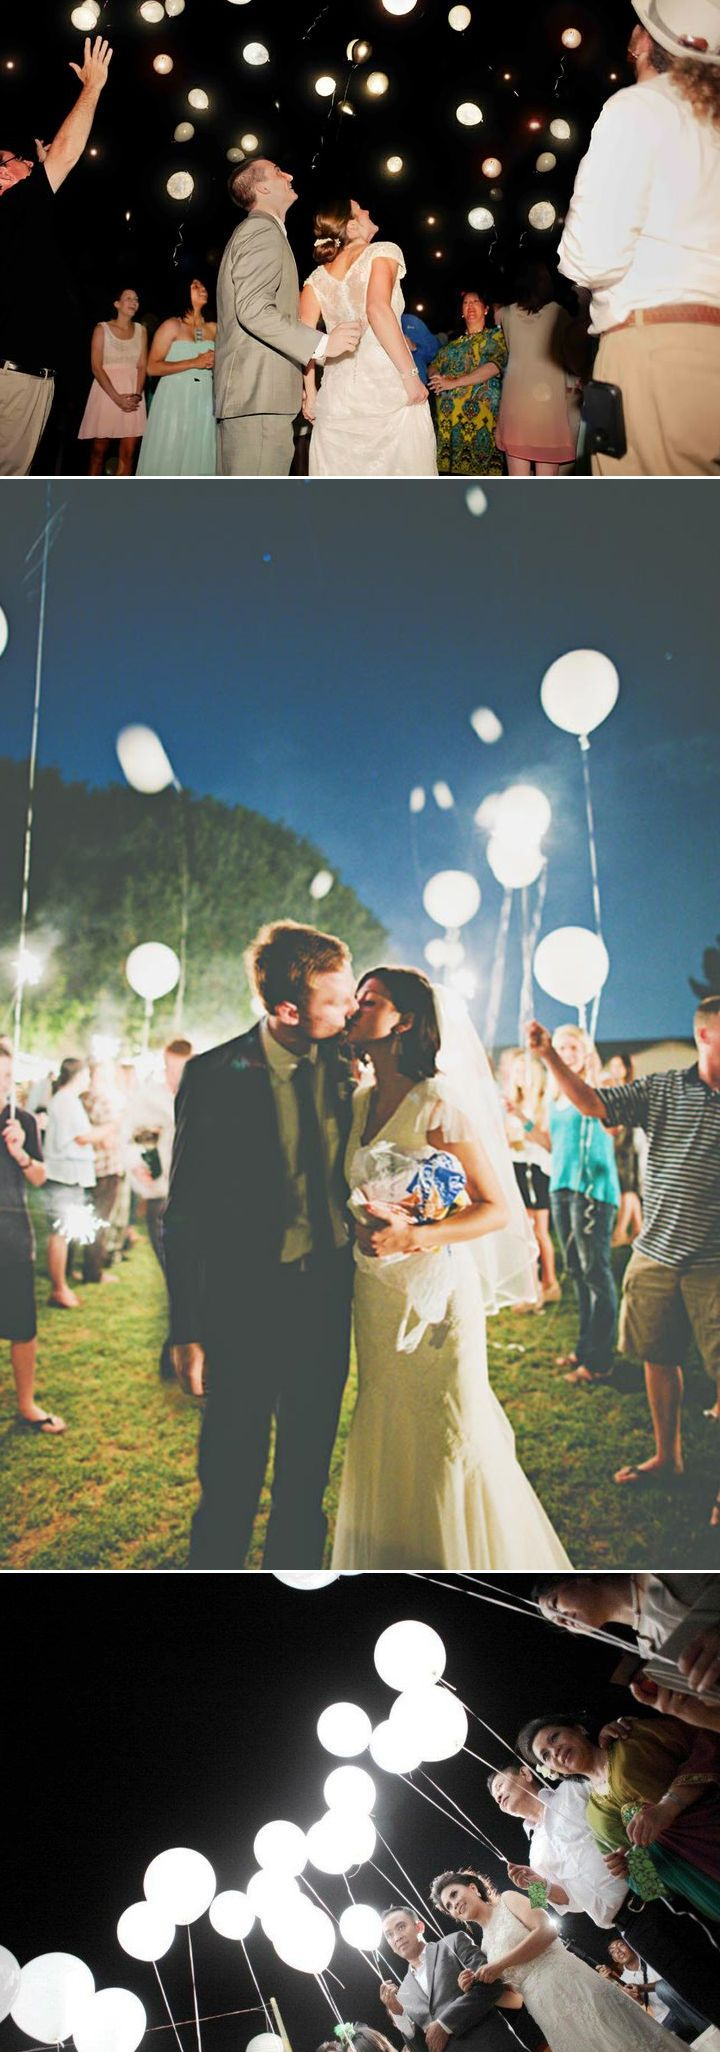 These balloon send-offs have seriously stolen our hearts!